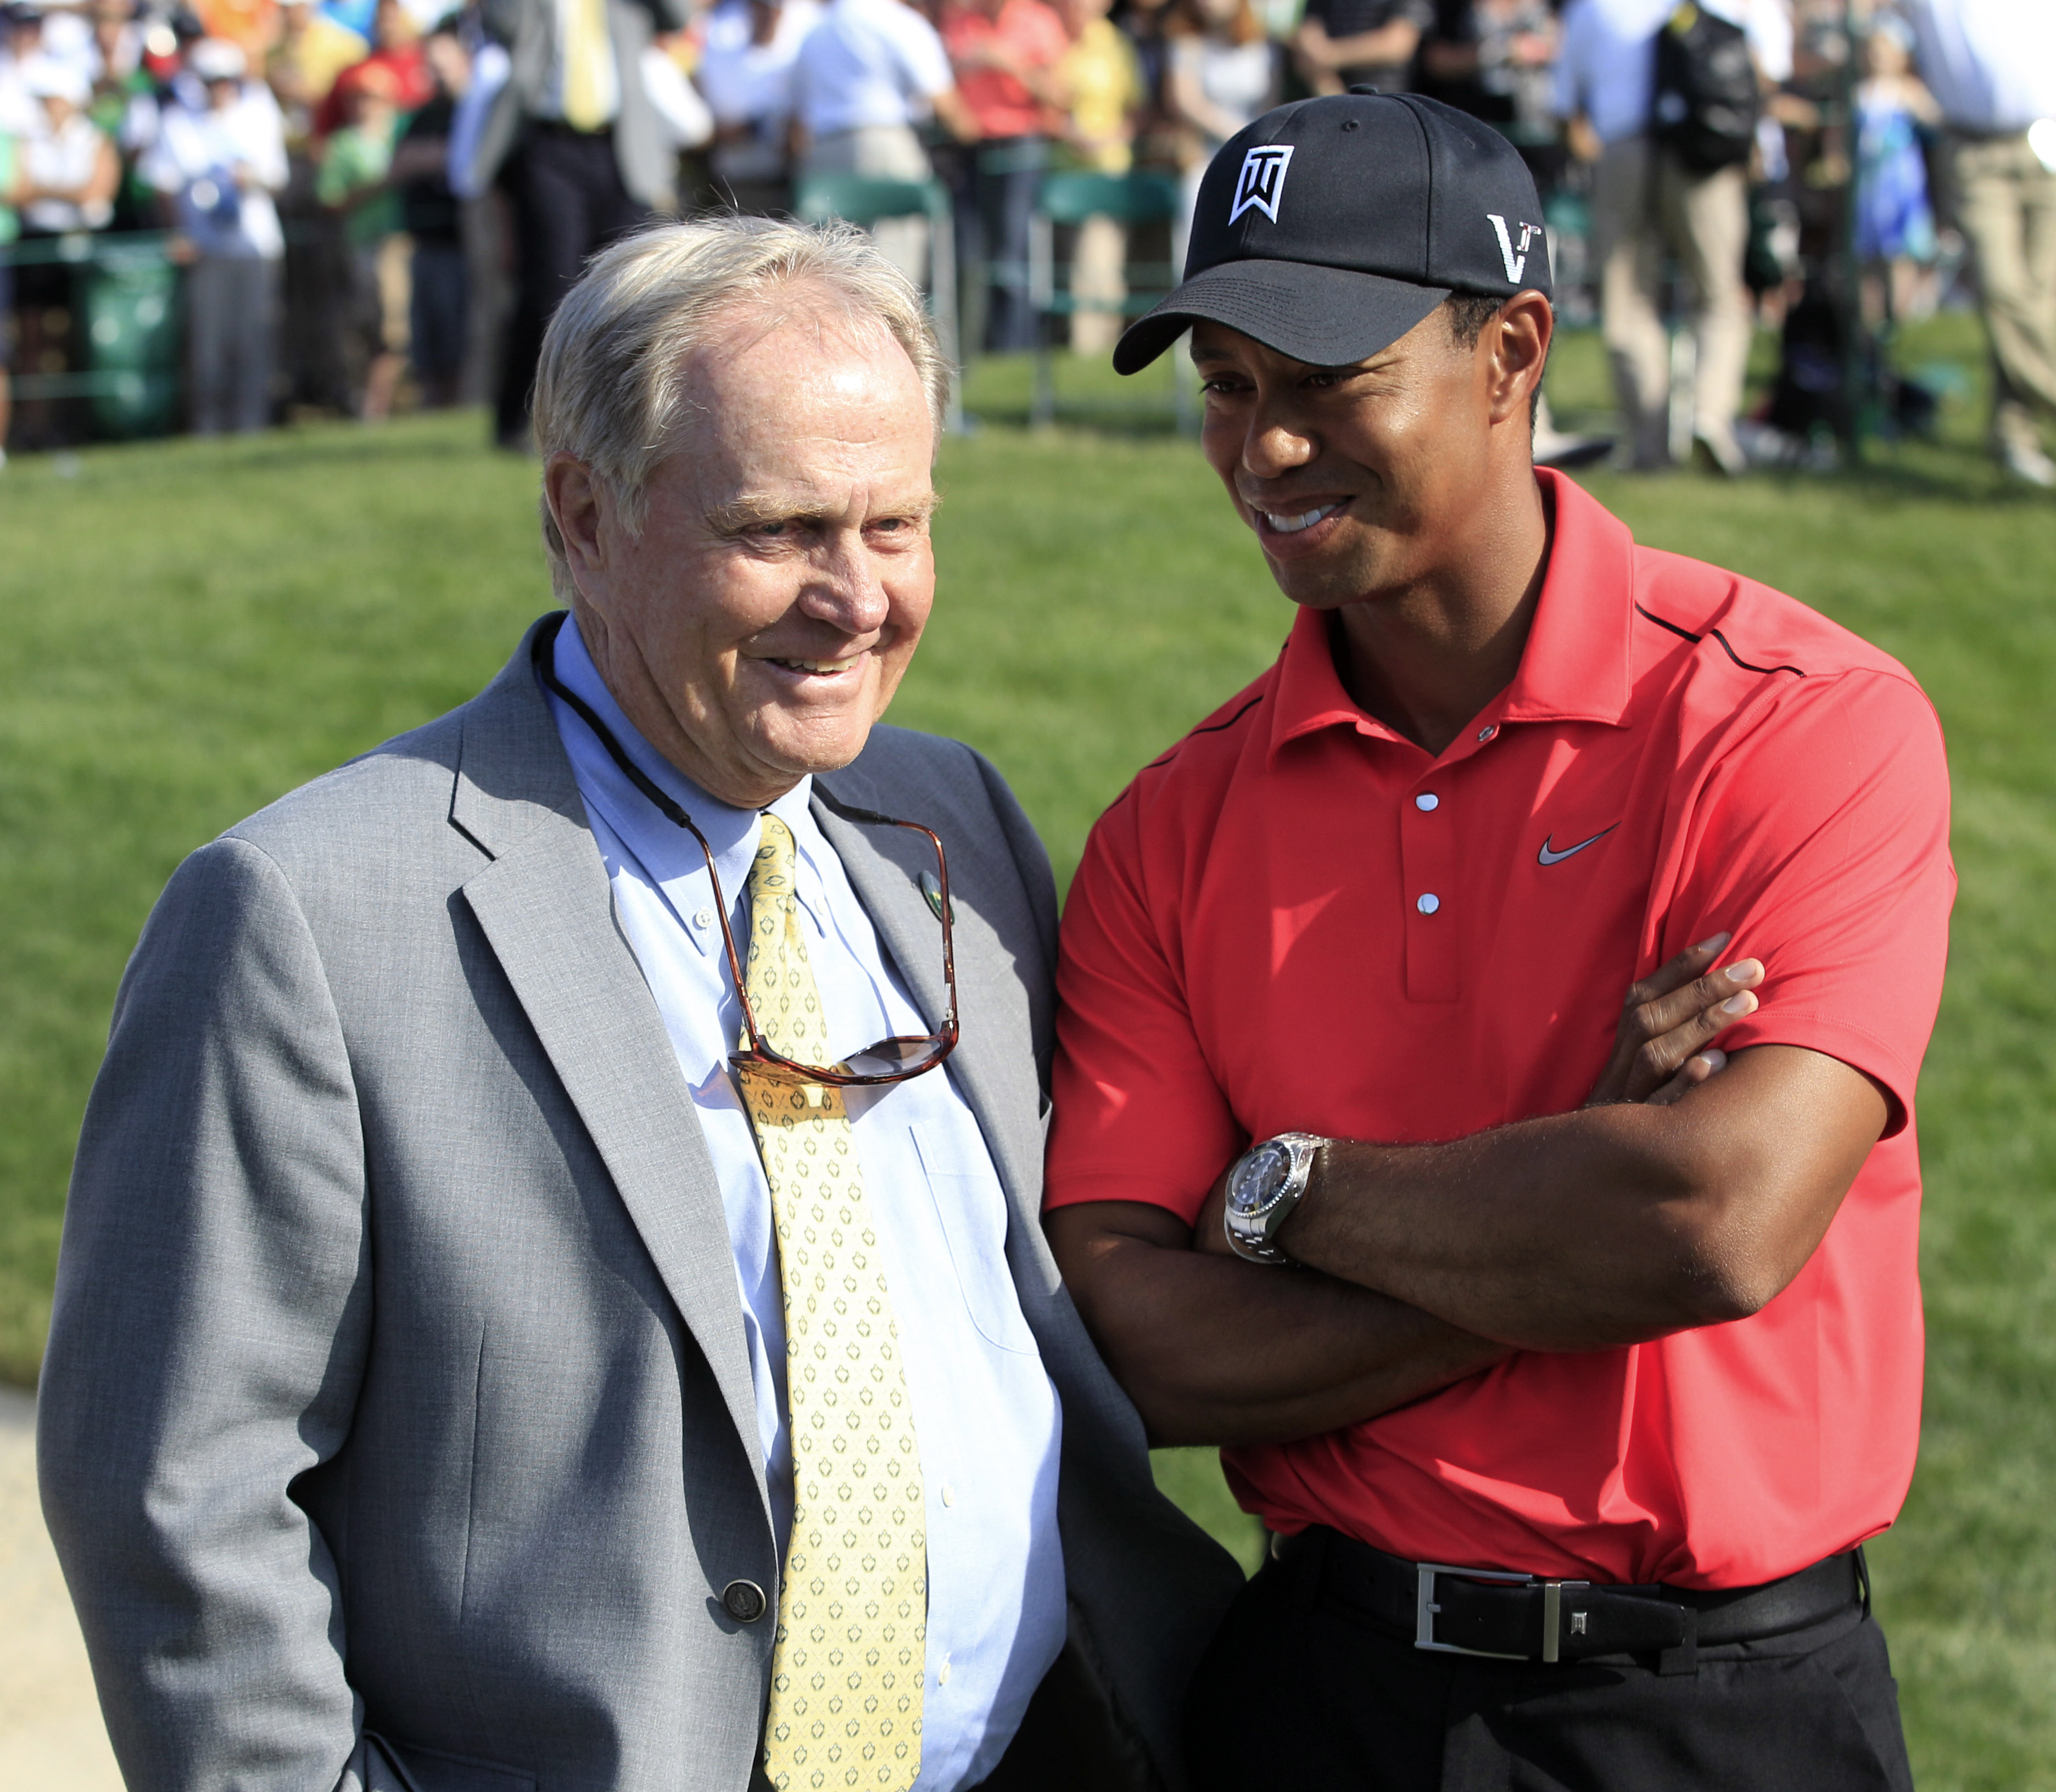 Jack Nicklaus talks with Tiger Woods after Woods won the Memorial golf tournament in 2012.